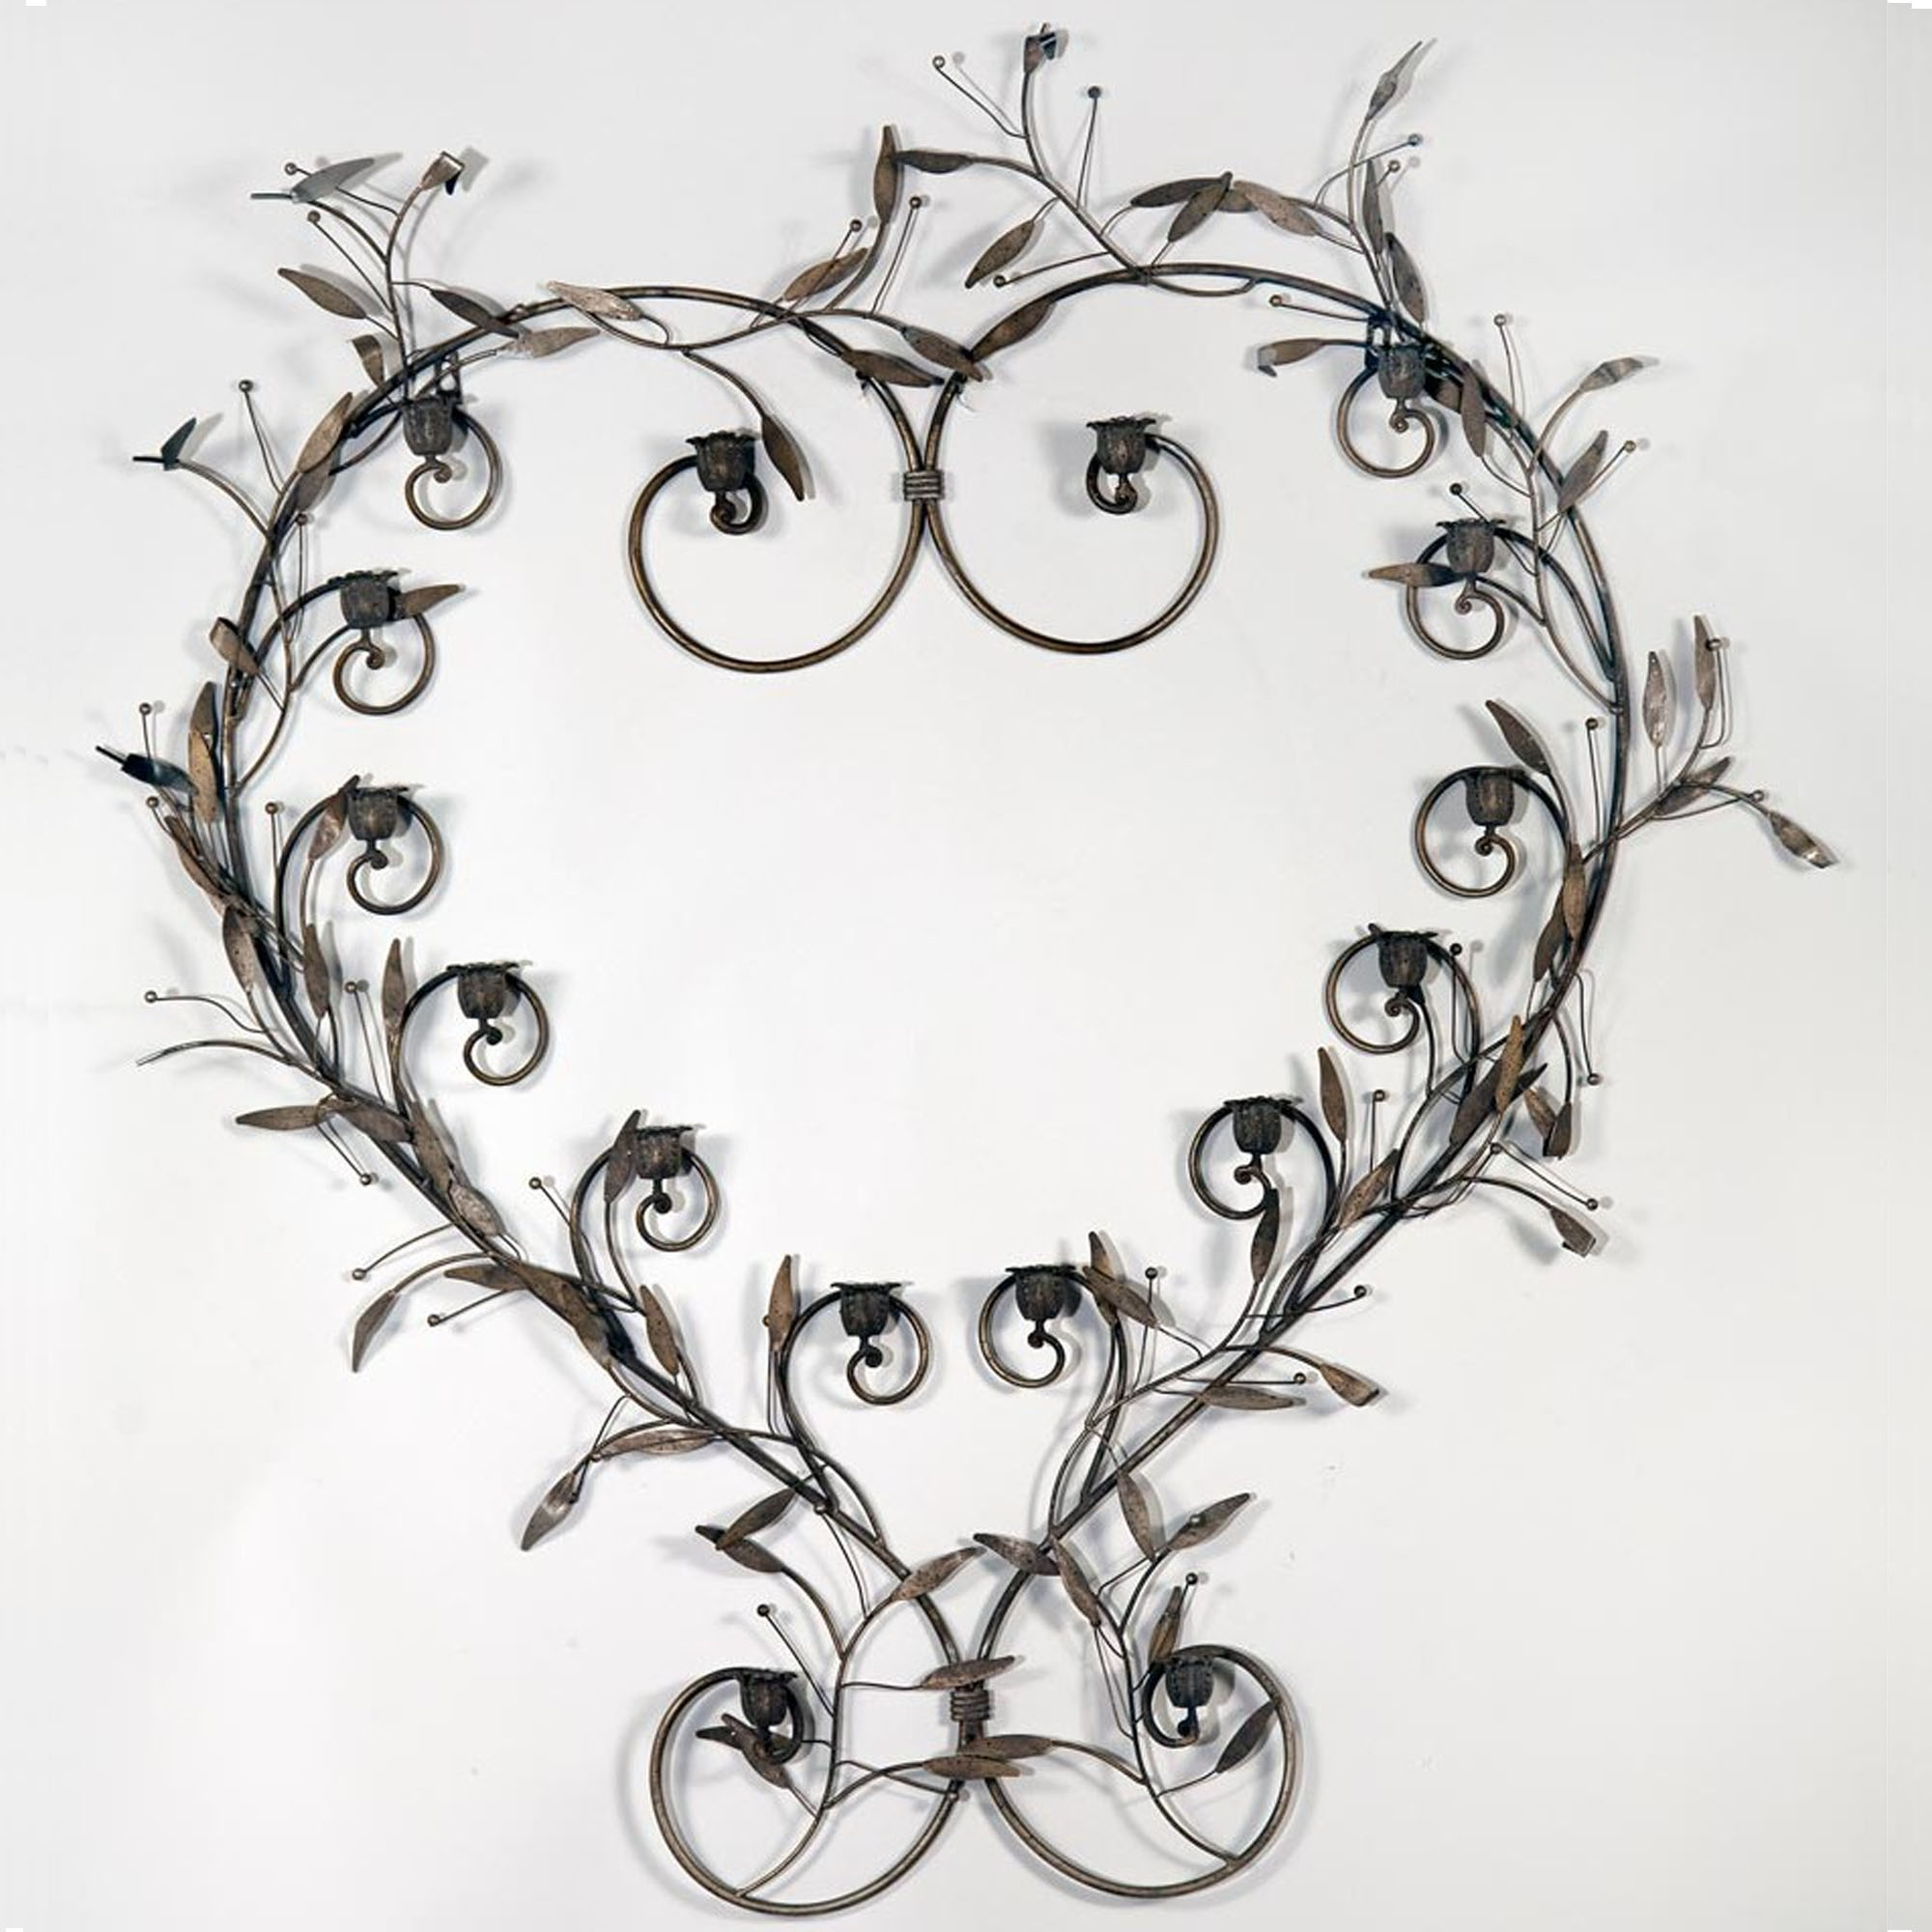 Metal Heart Shaped Antique French Style Candle Holder Candle Holders